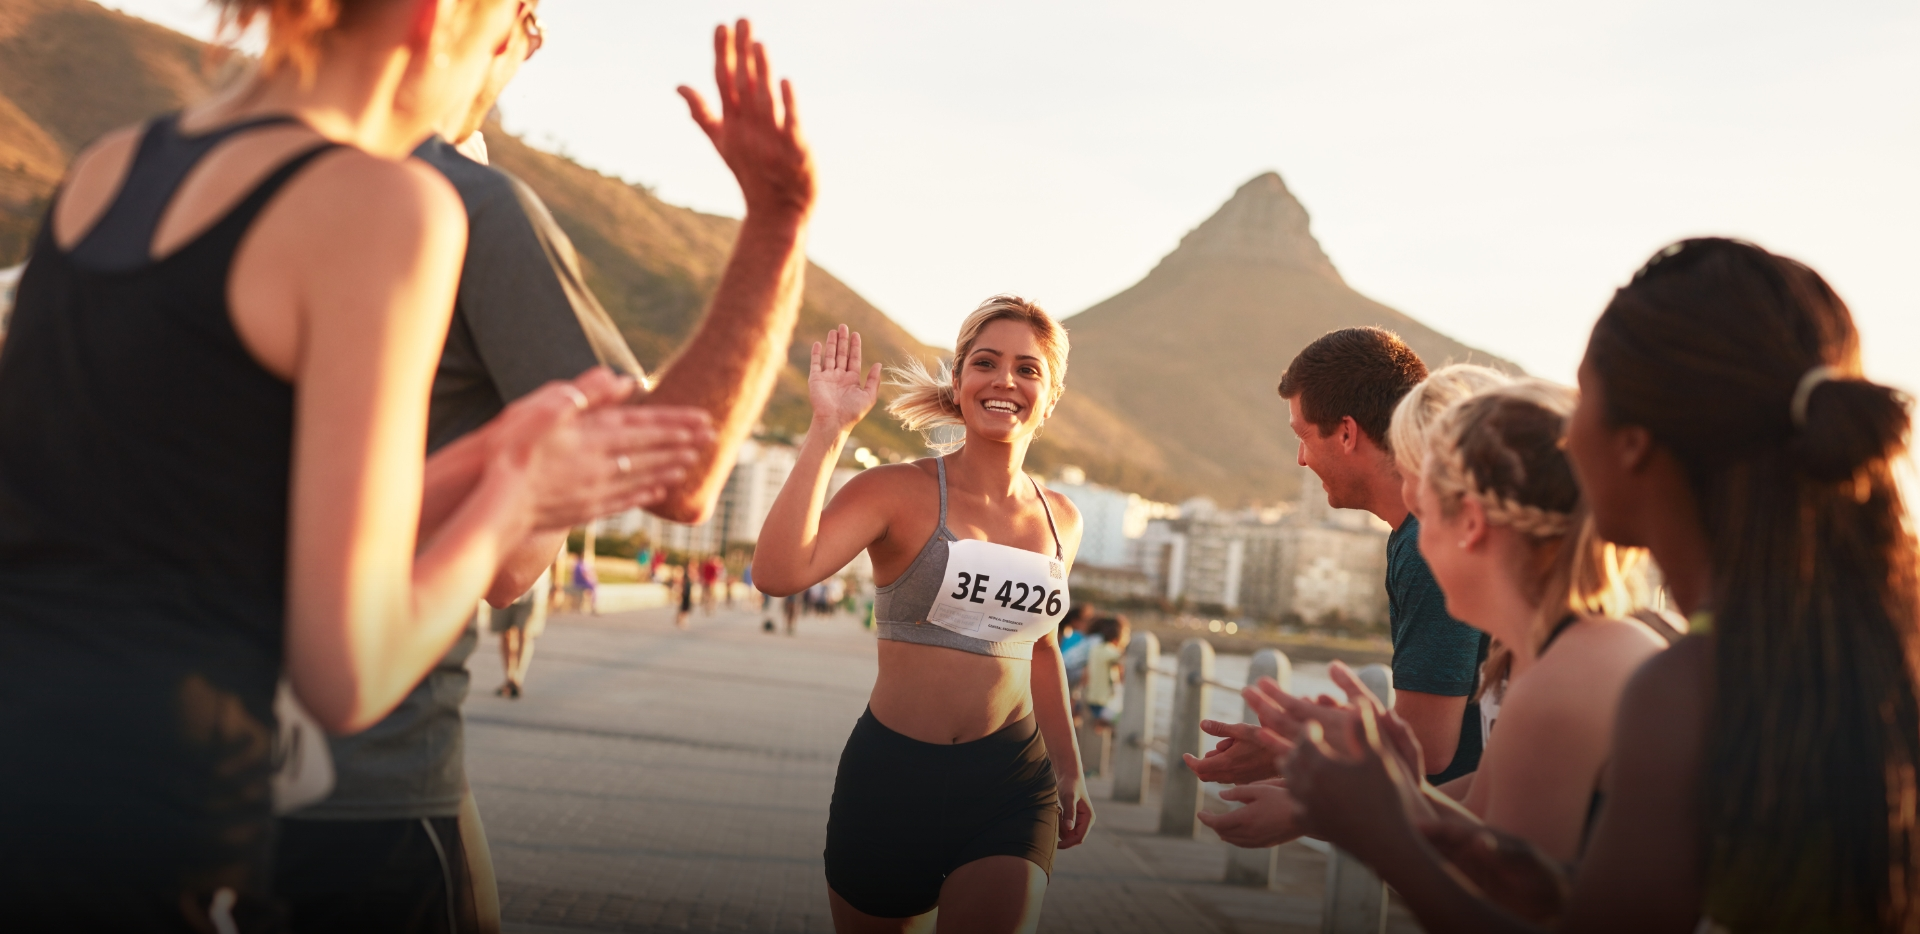 a bunch of friends high five and cheer for a female runner as she passes them during a marathon race